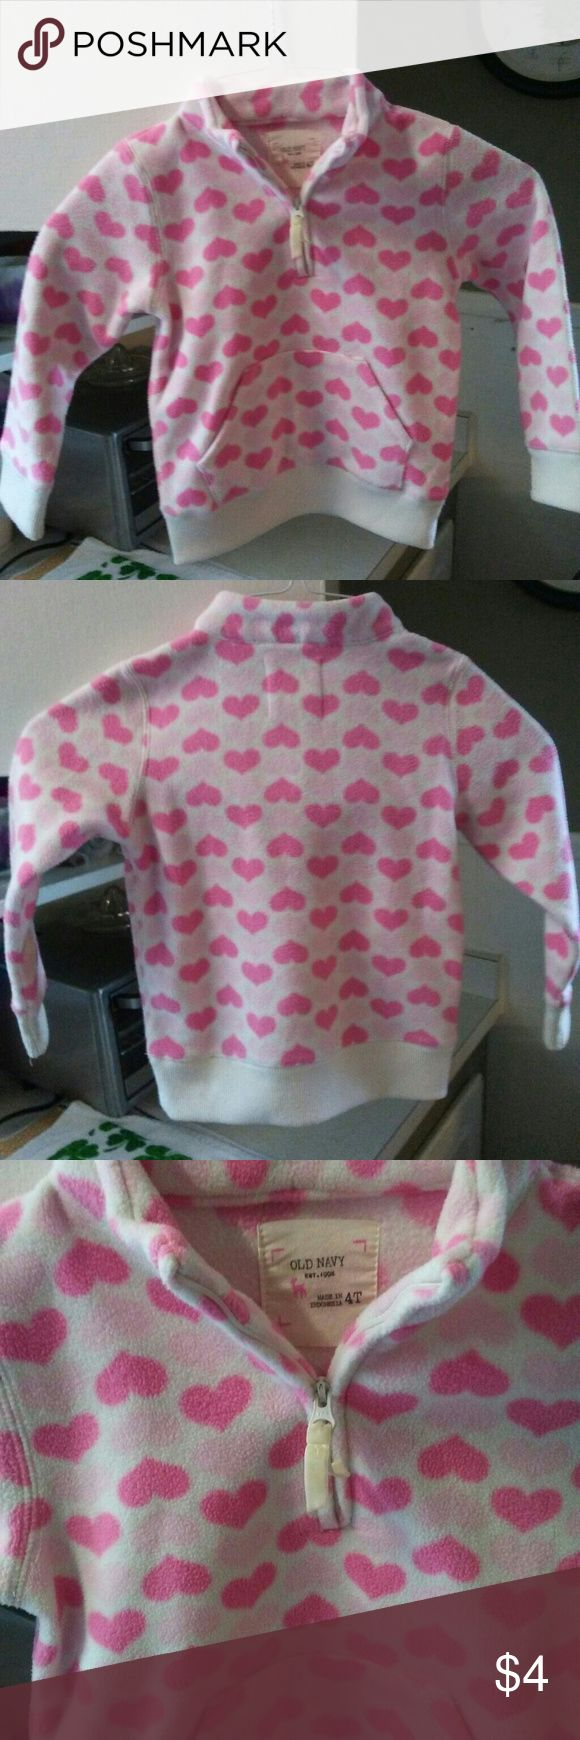 OLD NAVY HOODIE FLEECE GIRLS 4T PINK HEARTS GENTLY USED GIRLS 4T OLD NAVY FLEECE HOODIE WITH PINK HEARTS ONTO OF WHITE BACKGROUND. Old Navy Shirts & Tops Sweatshirts & Hoodies